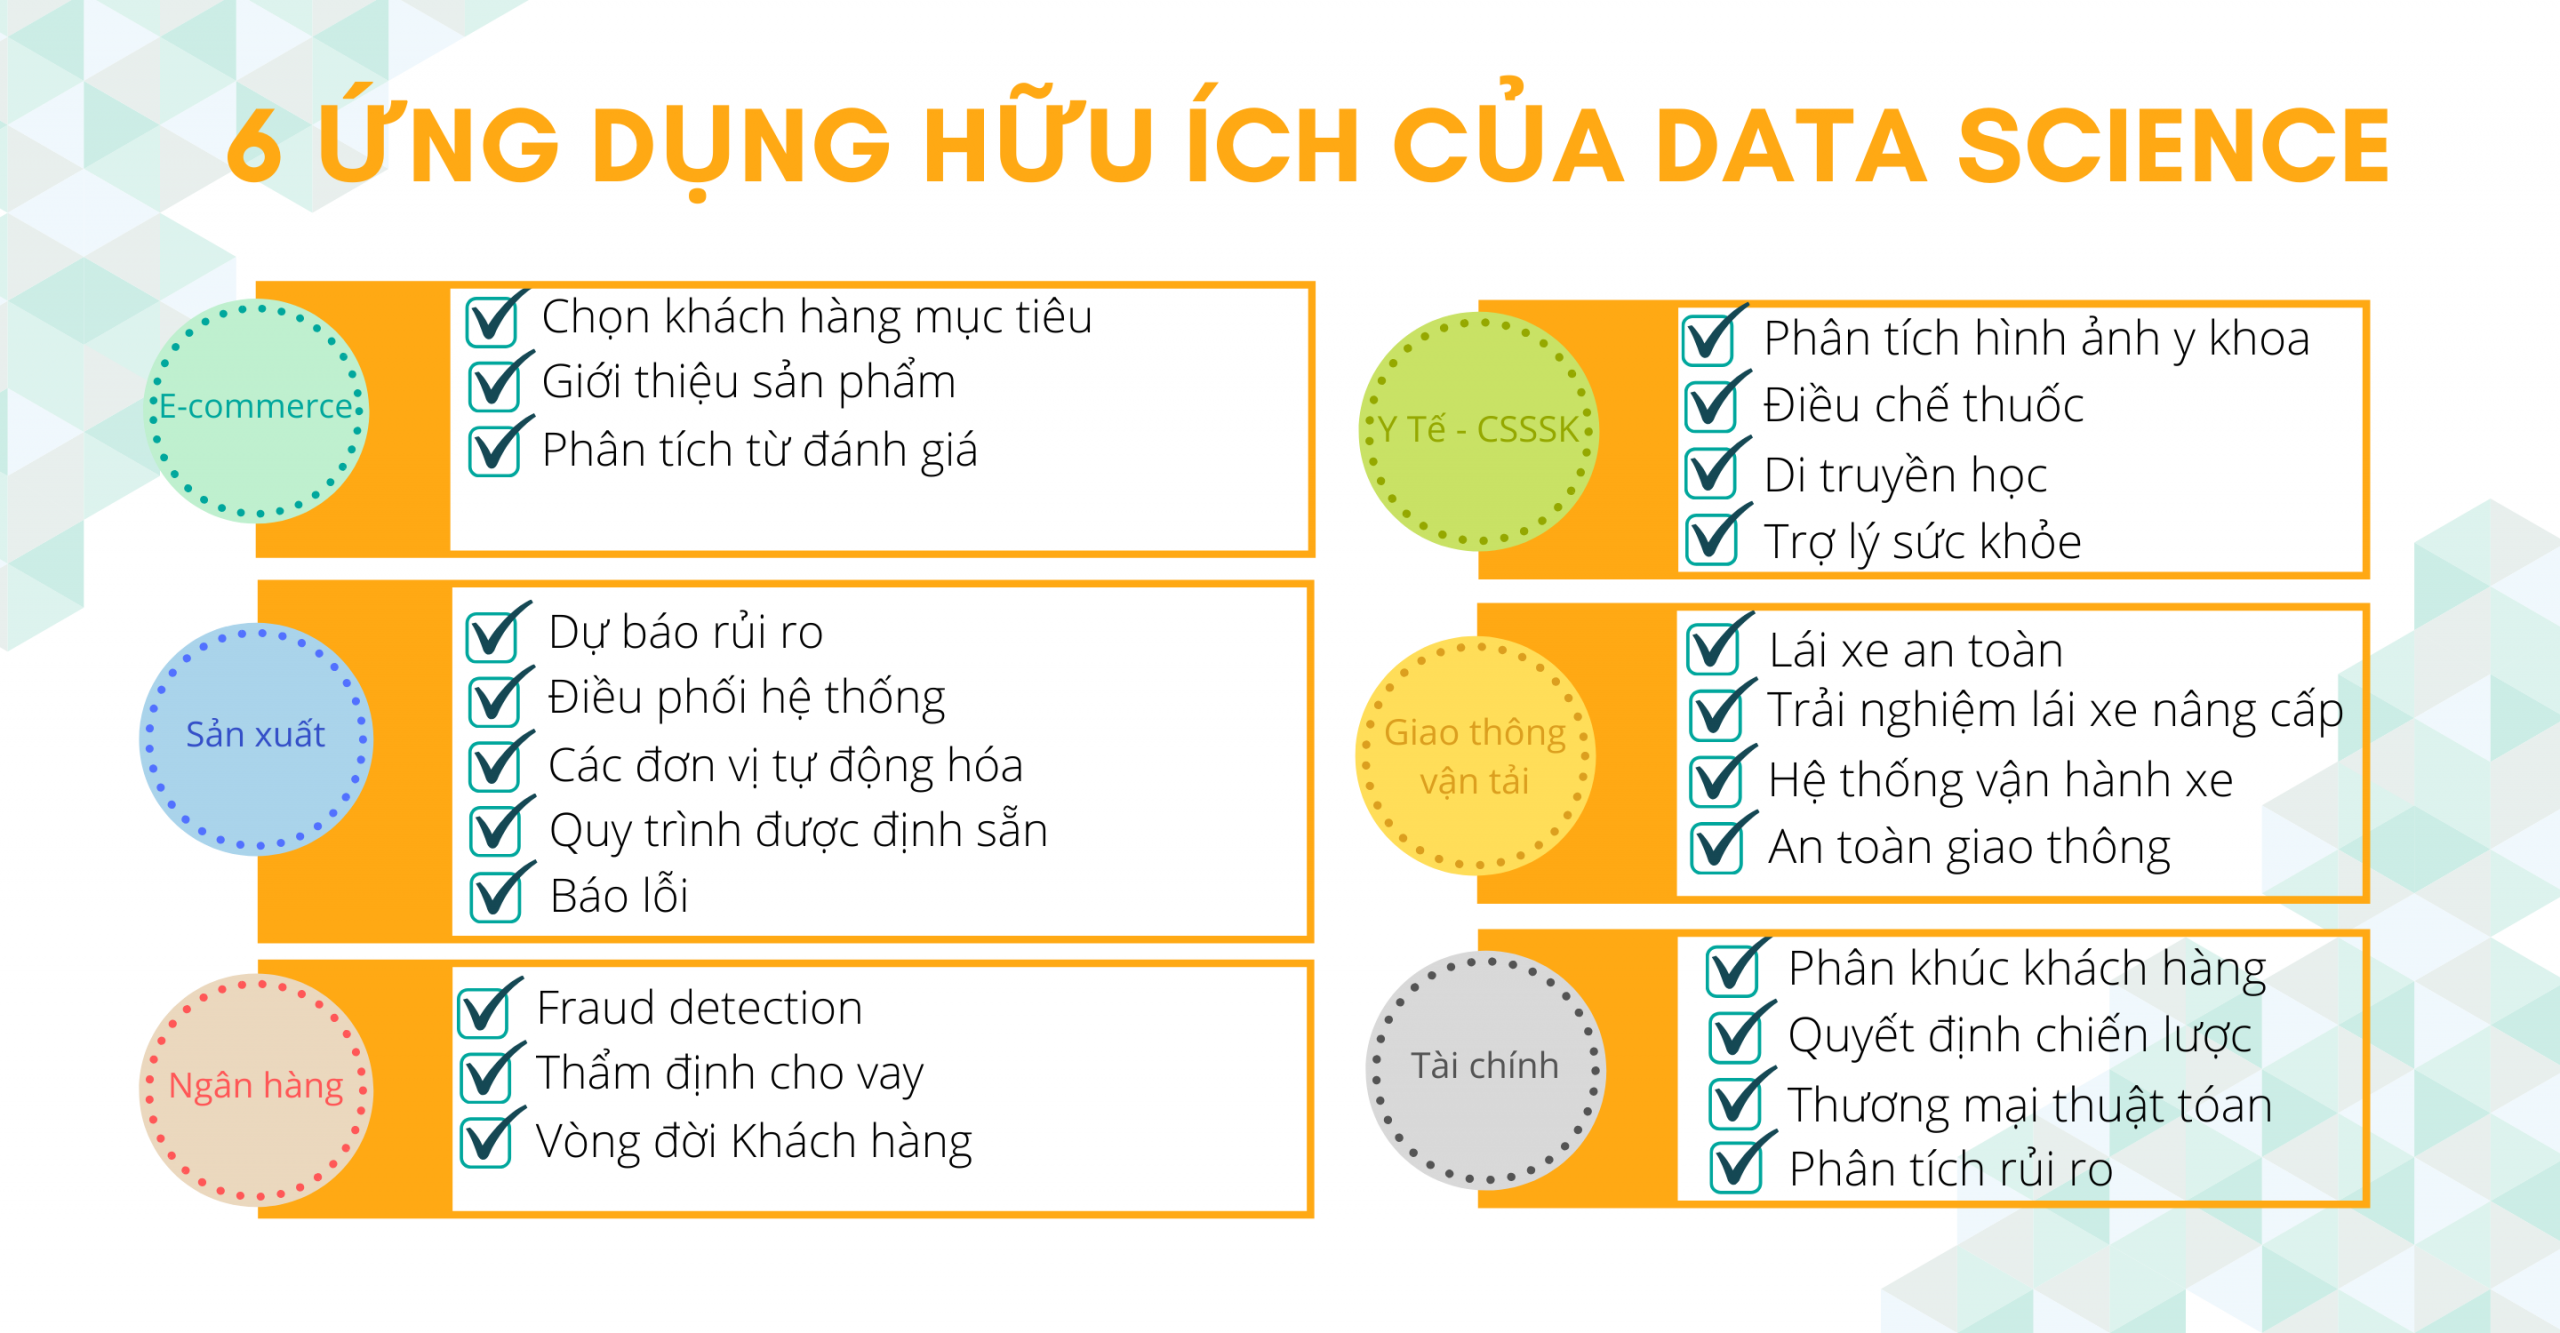 VienISB_ung dung cua data science-1